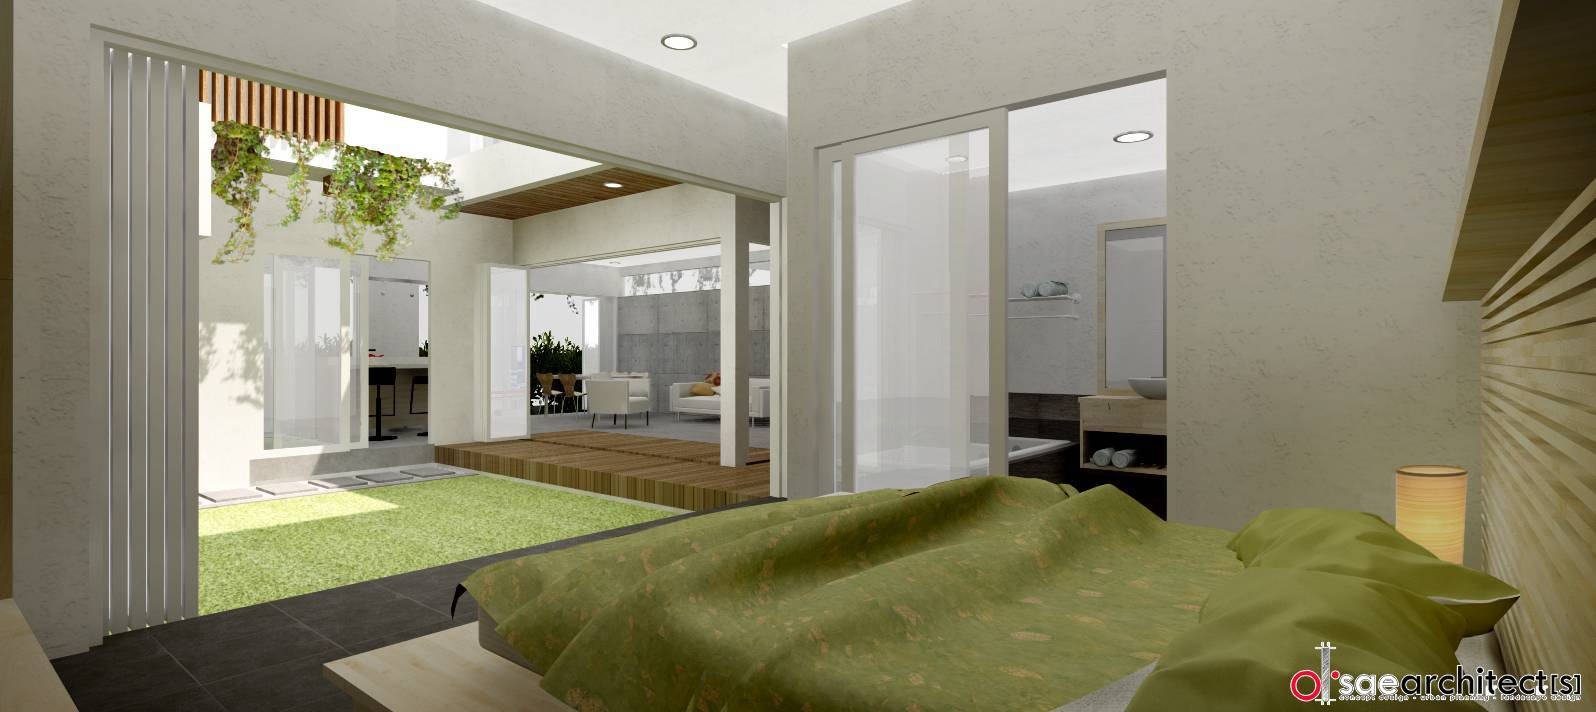 Tito Renarto M. Verdant View House At Bsd Tangerang  Tangerang  Bedroom   2028